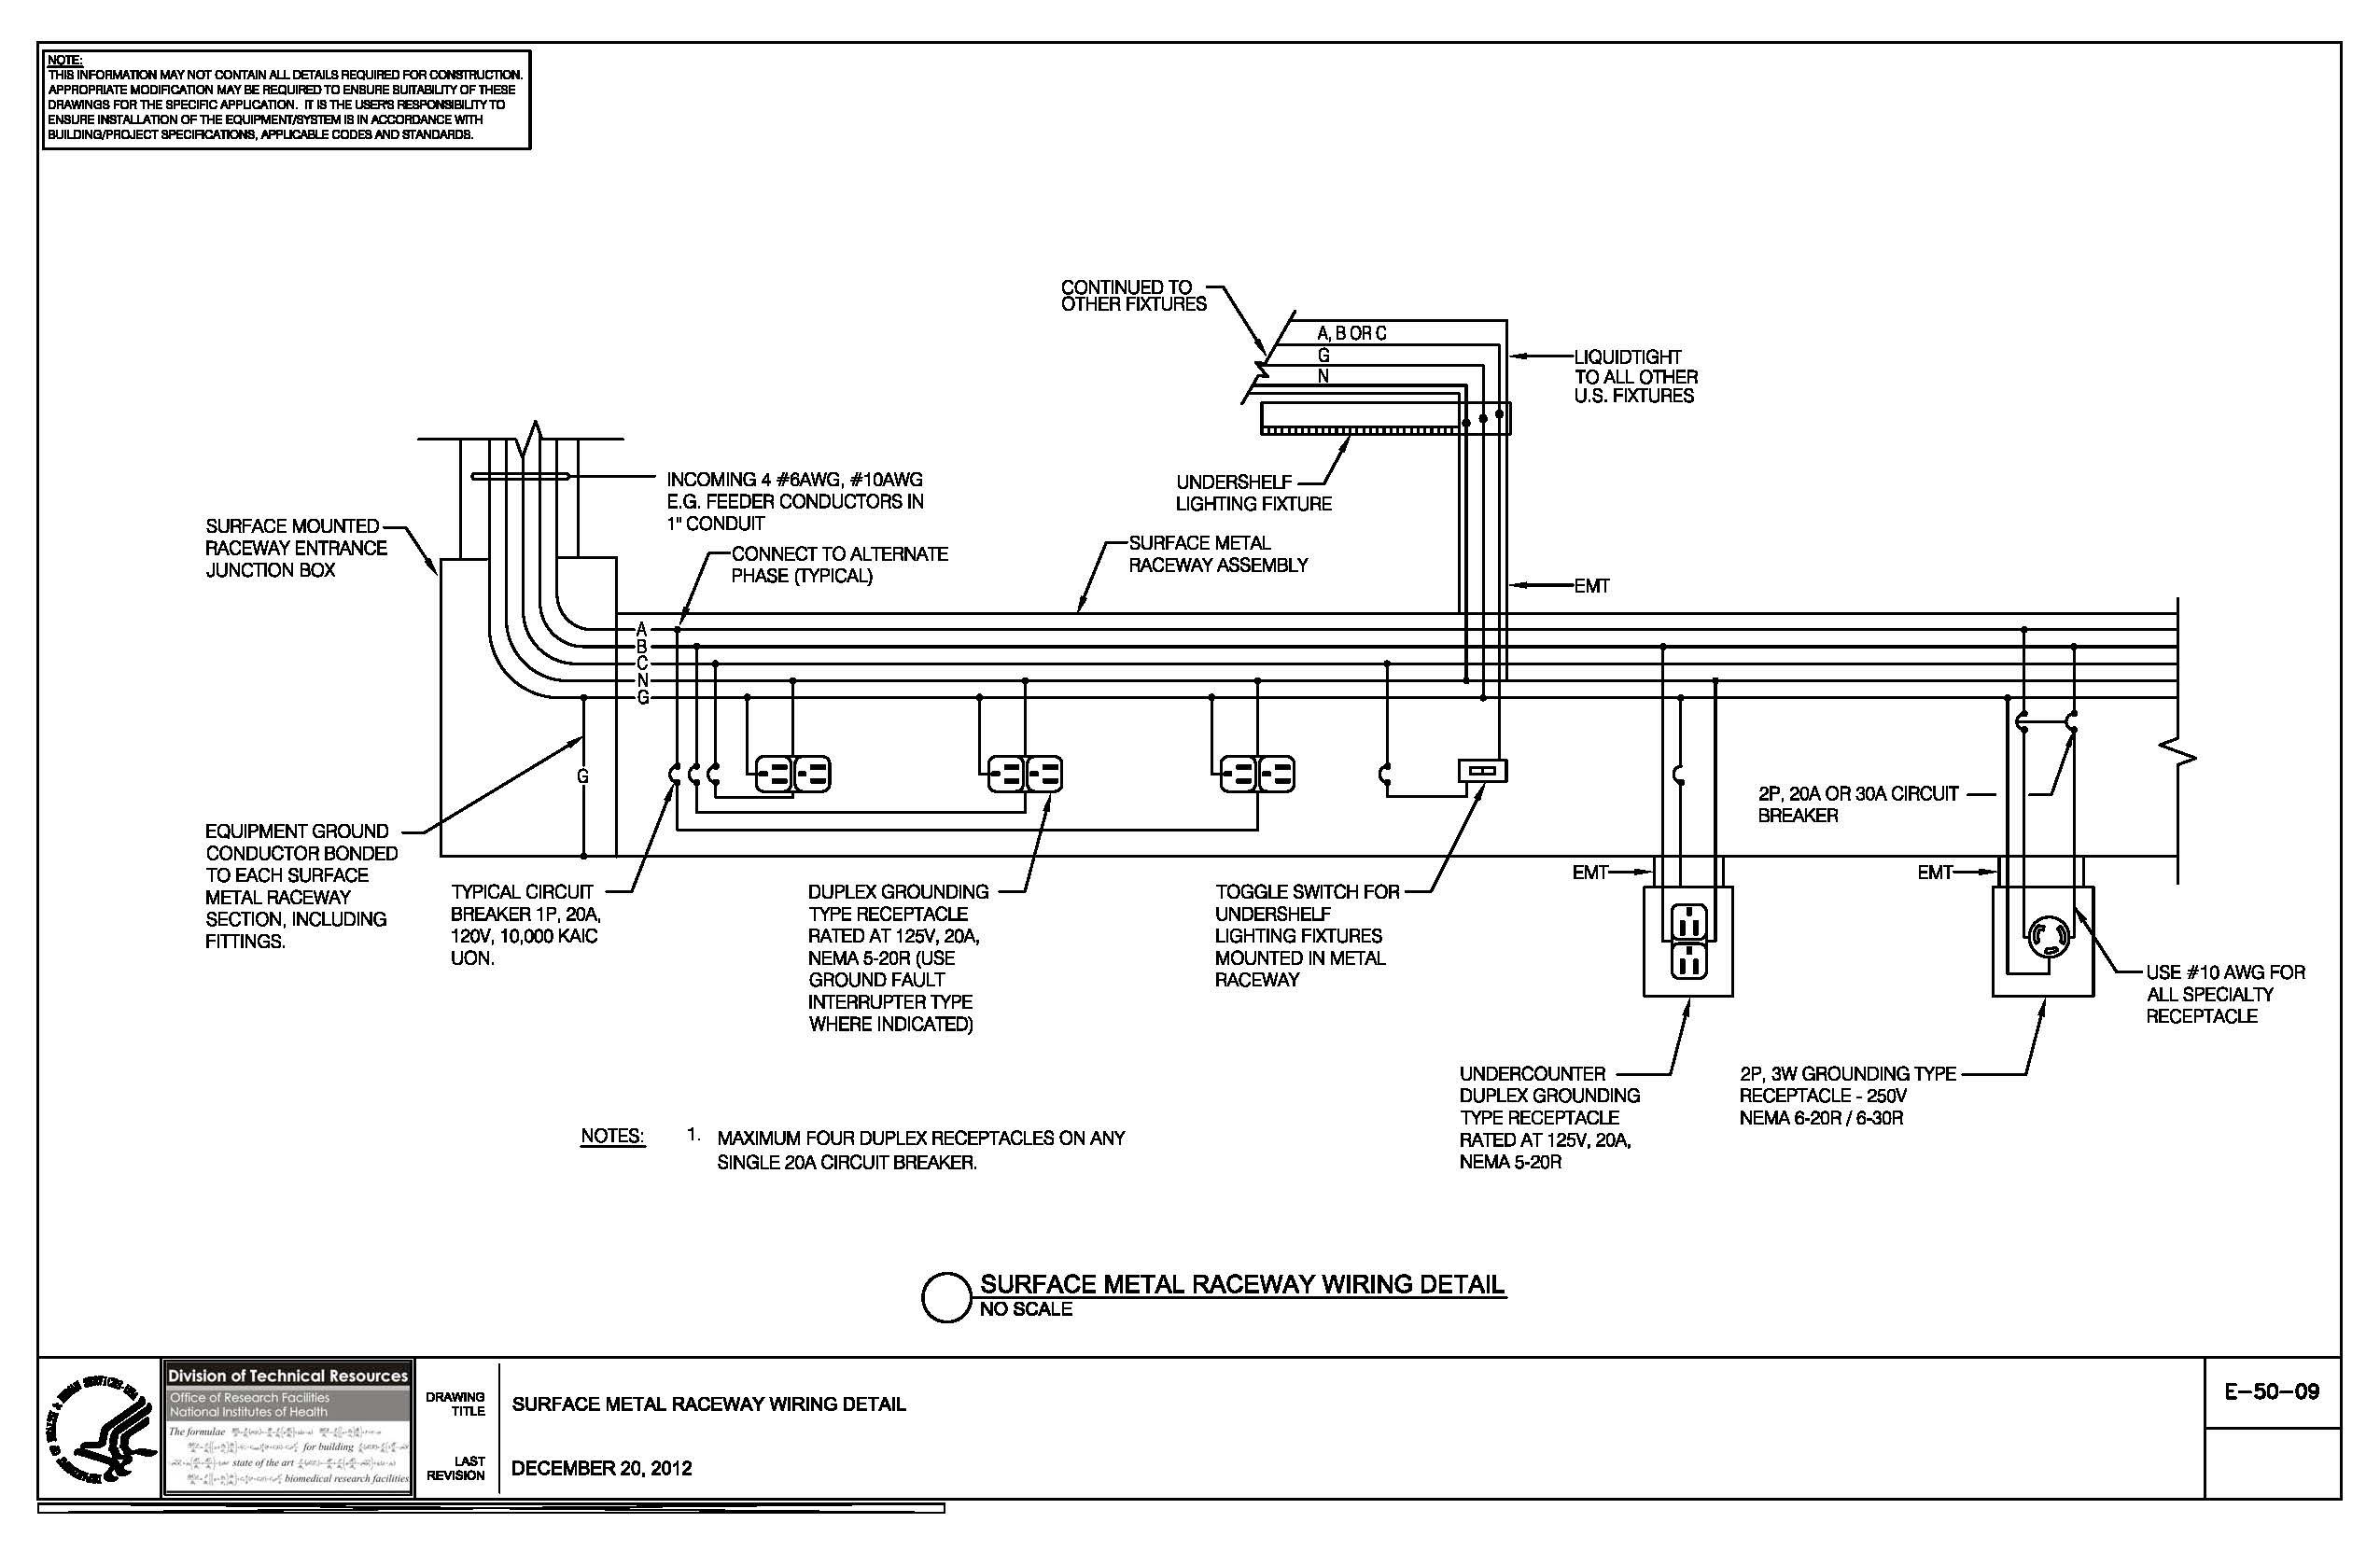 Fan Wall Schematic Schematics Data Wiring Diagrams Centrifugal Diagram Nih Standard Cad Details Blower Industrial